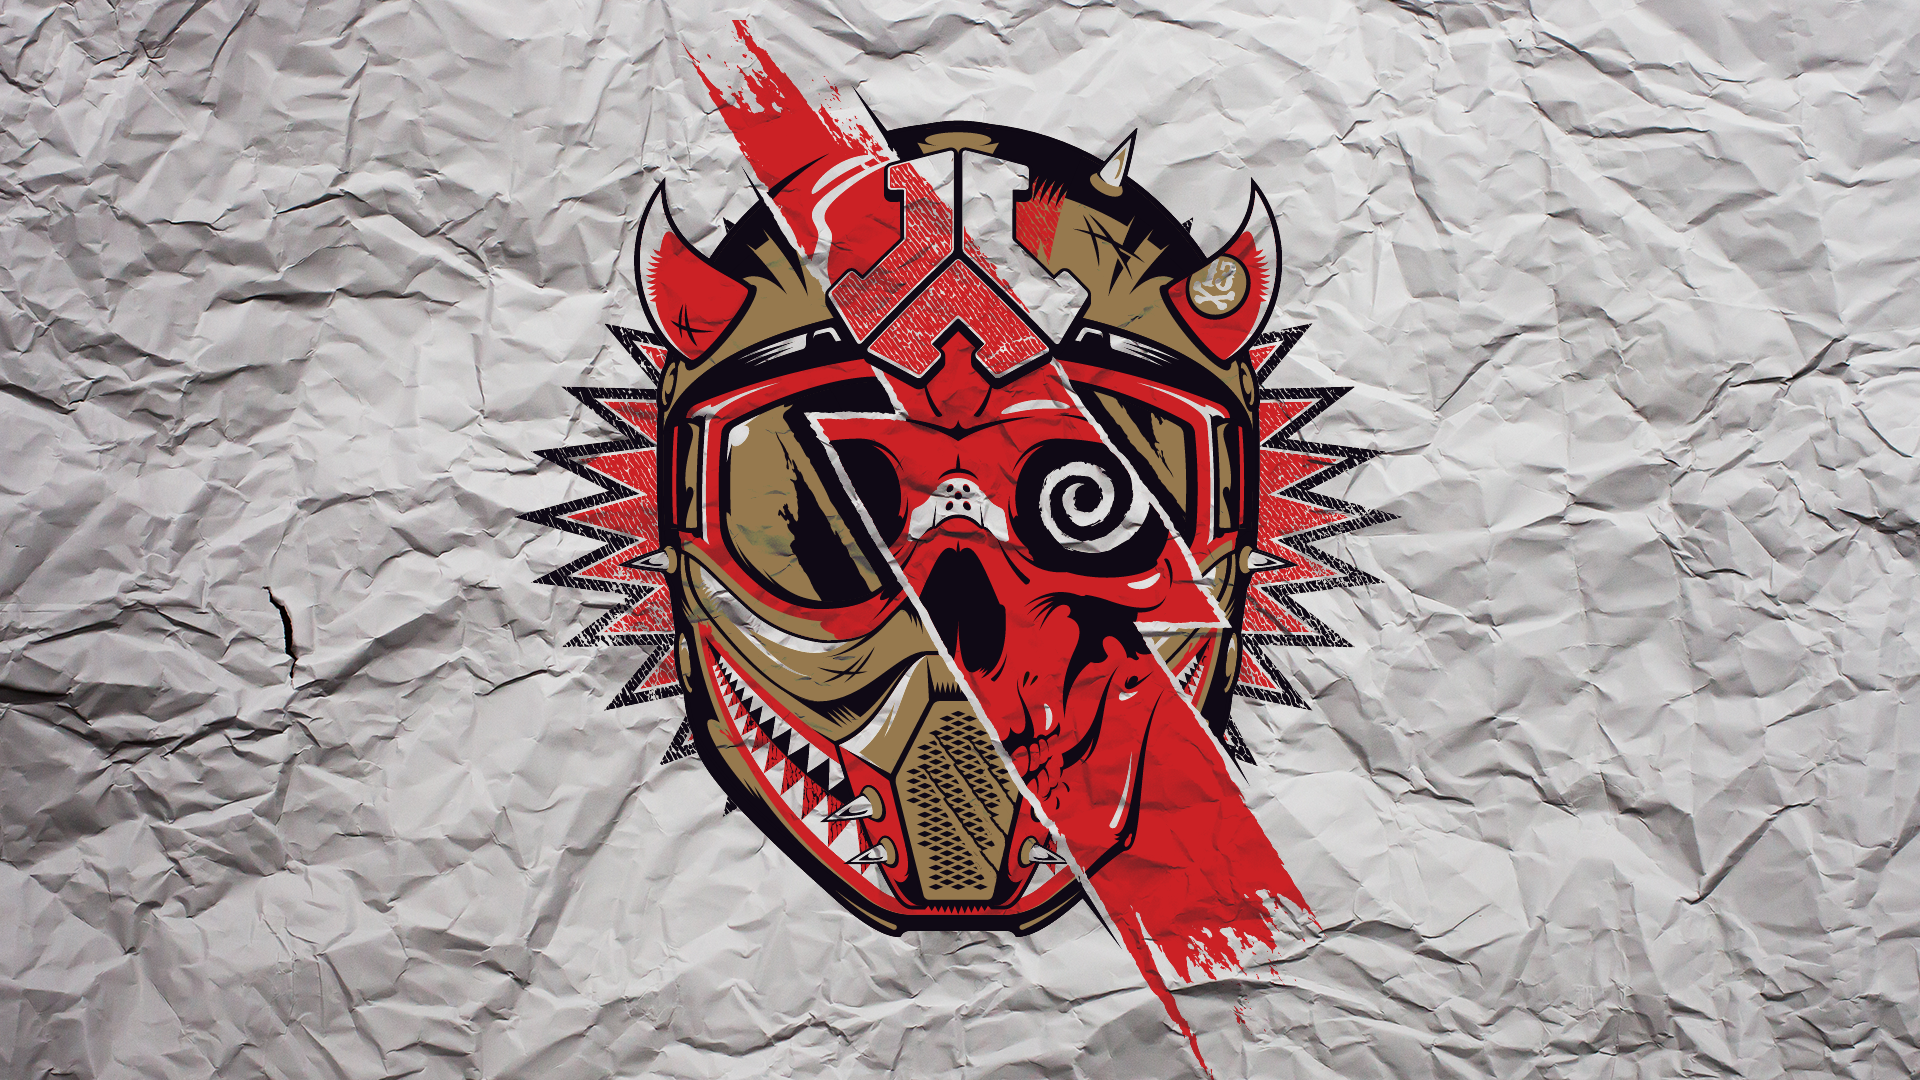 Made some new defqon 1 2015 wallpapers Come with 1920x1080